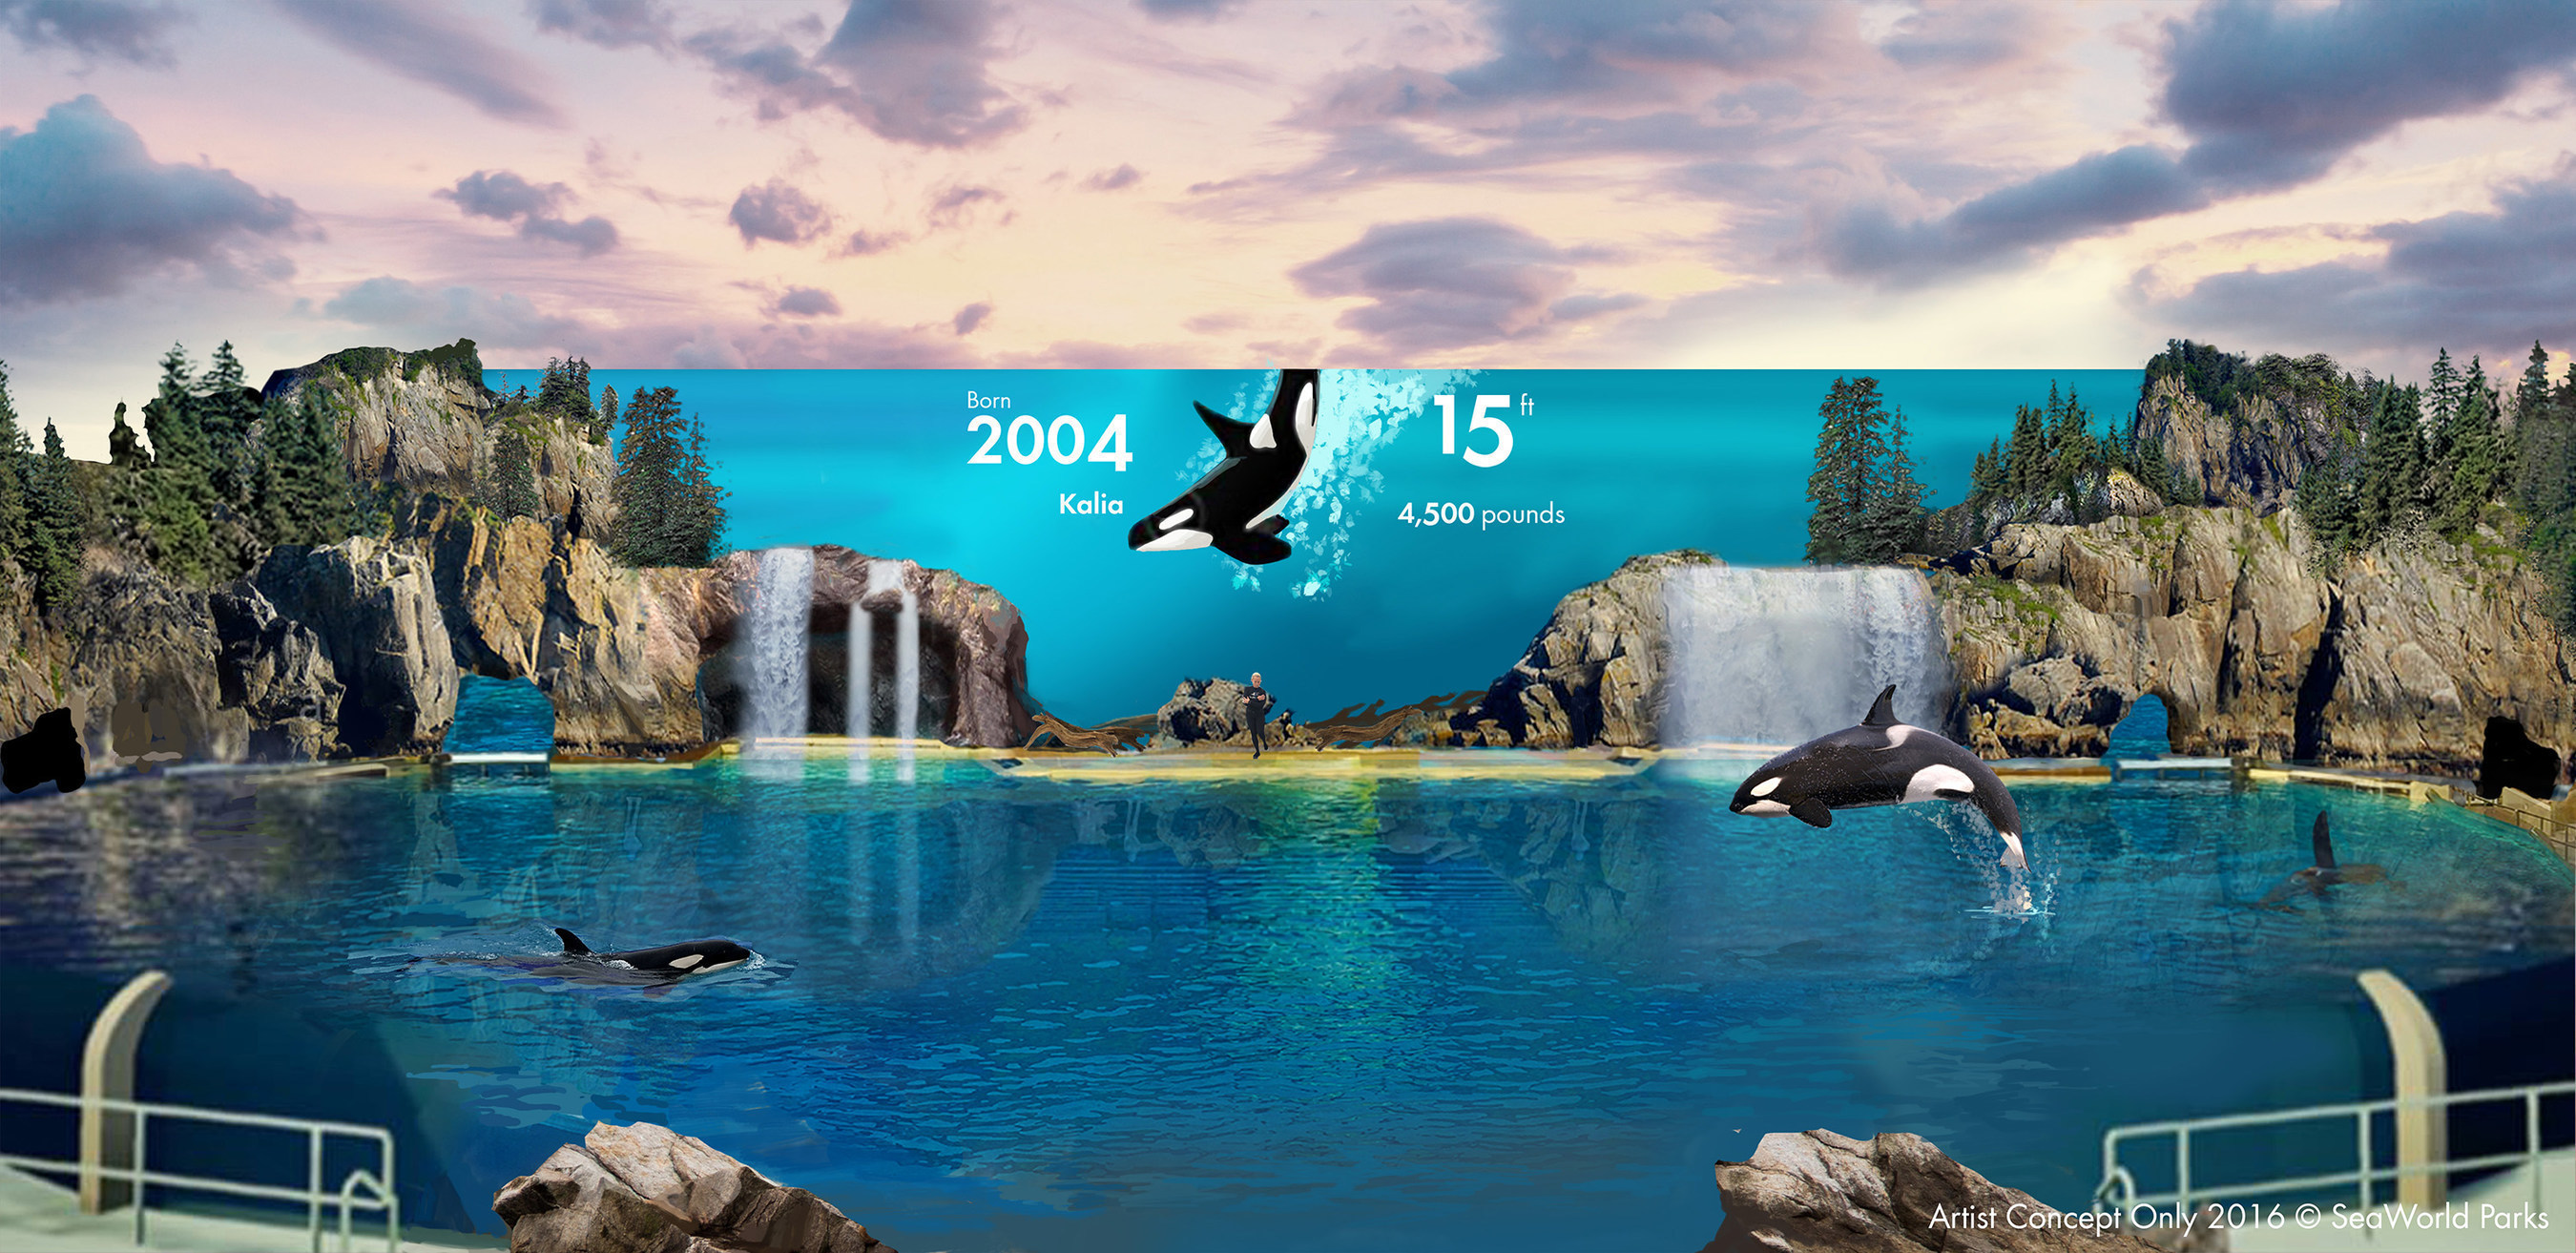 SeaWorld San Diego will introduce new, inspiring and educational orca encounters with the feel of a live documentary. The new behavior-based orca experience will inspire as well as educate guests about the majesty of these complex animals, and reinforces the company's commitment to provide educational experiences with the park's resident orcas.  These presentations will focus on orca enrichment, exercise, and overall health. This change will start in its San Diego park next year, followed by Orlando and then San Antonio by 2019. Credit: Artist Concept Only - 2016 (C)SeaWorld Parks